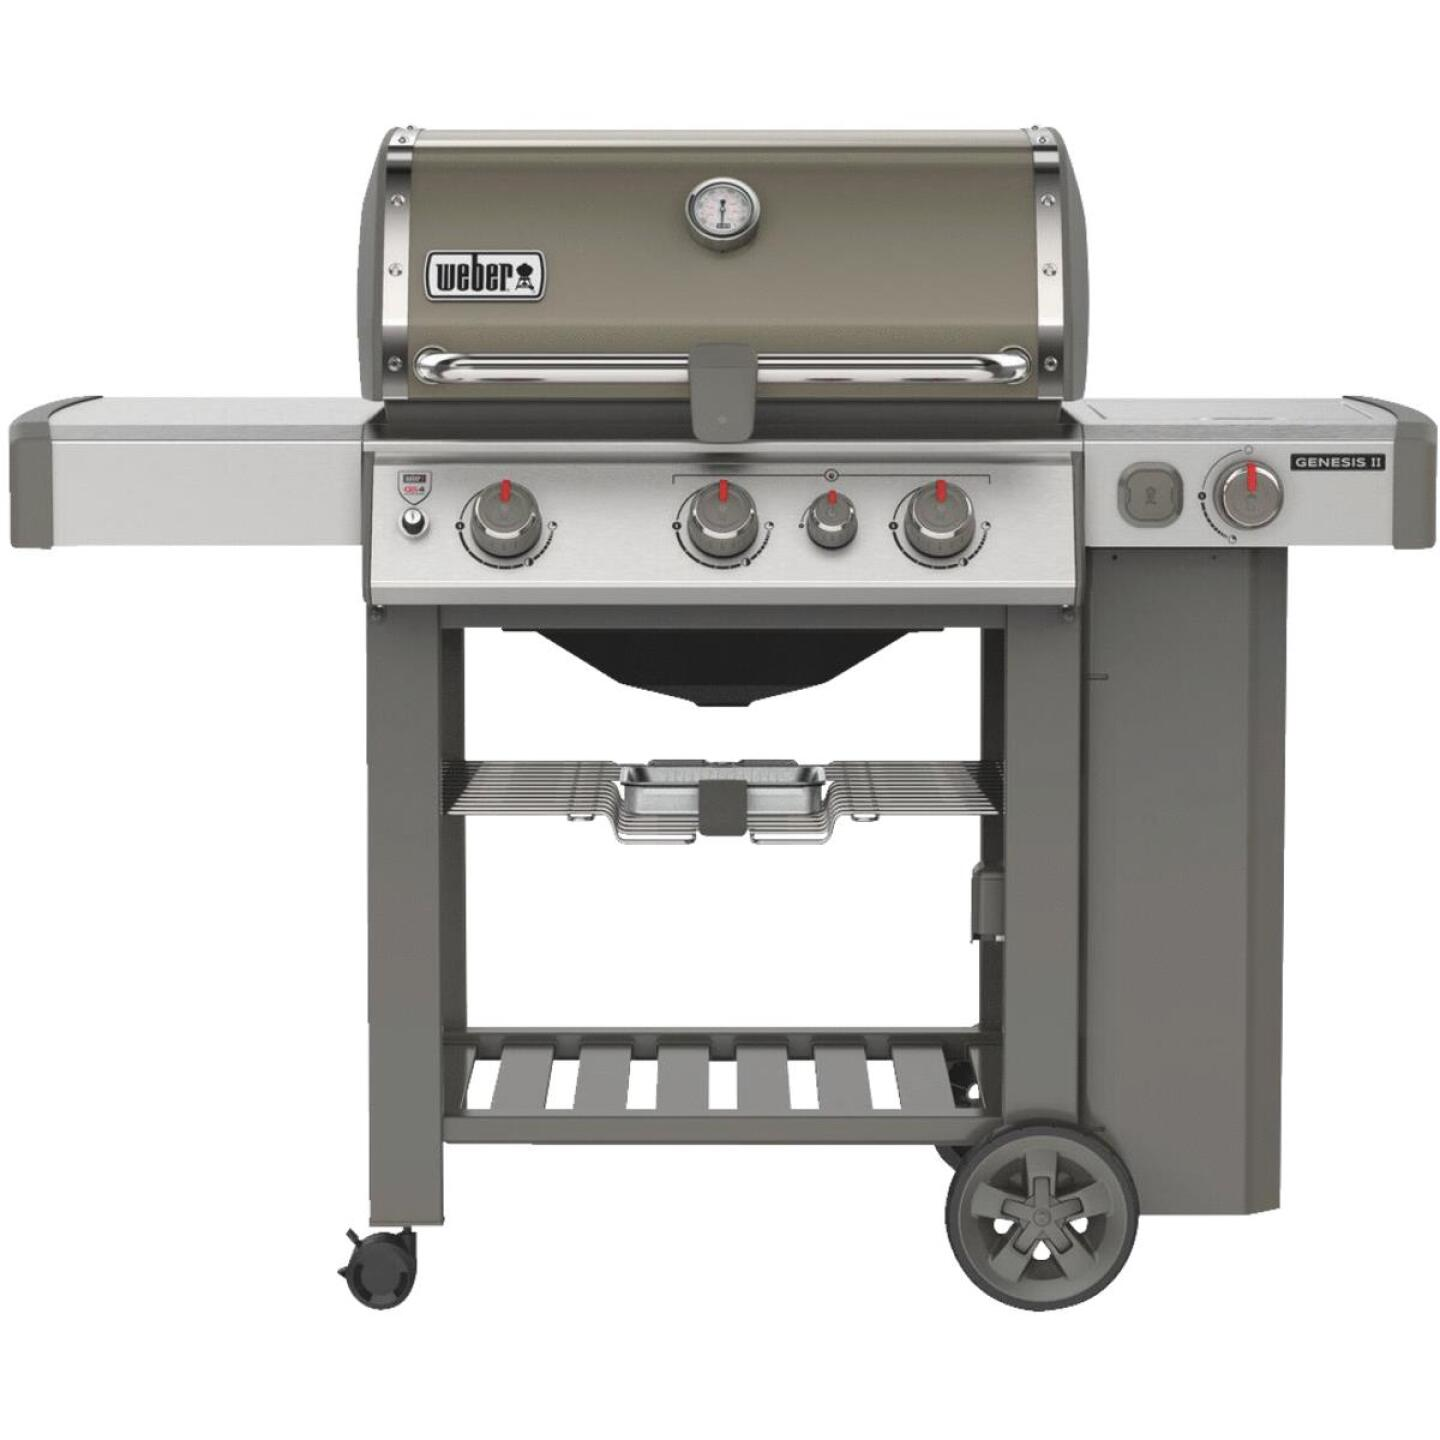 Weber Genesis II SE-330 3-Burner Smoke 39,000 BTU LP Gas Grill with 12,000 BTU Side -Burner Image 1